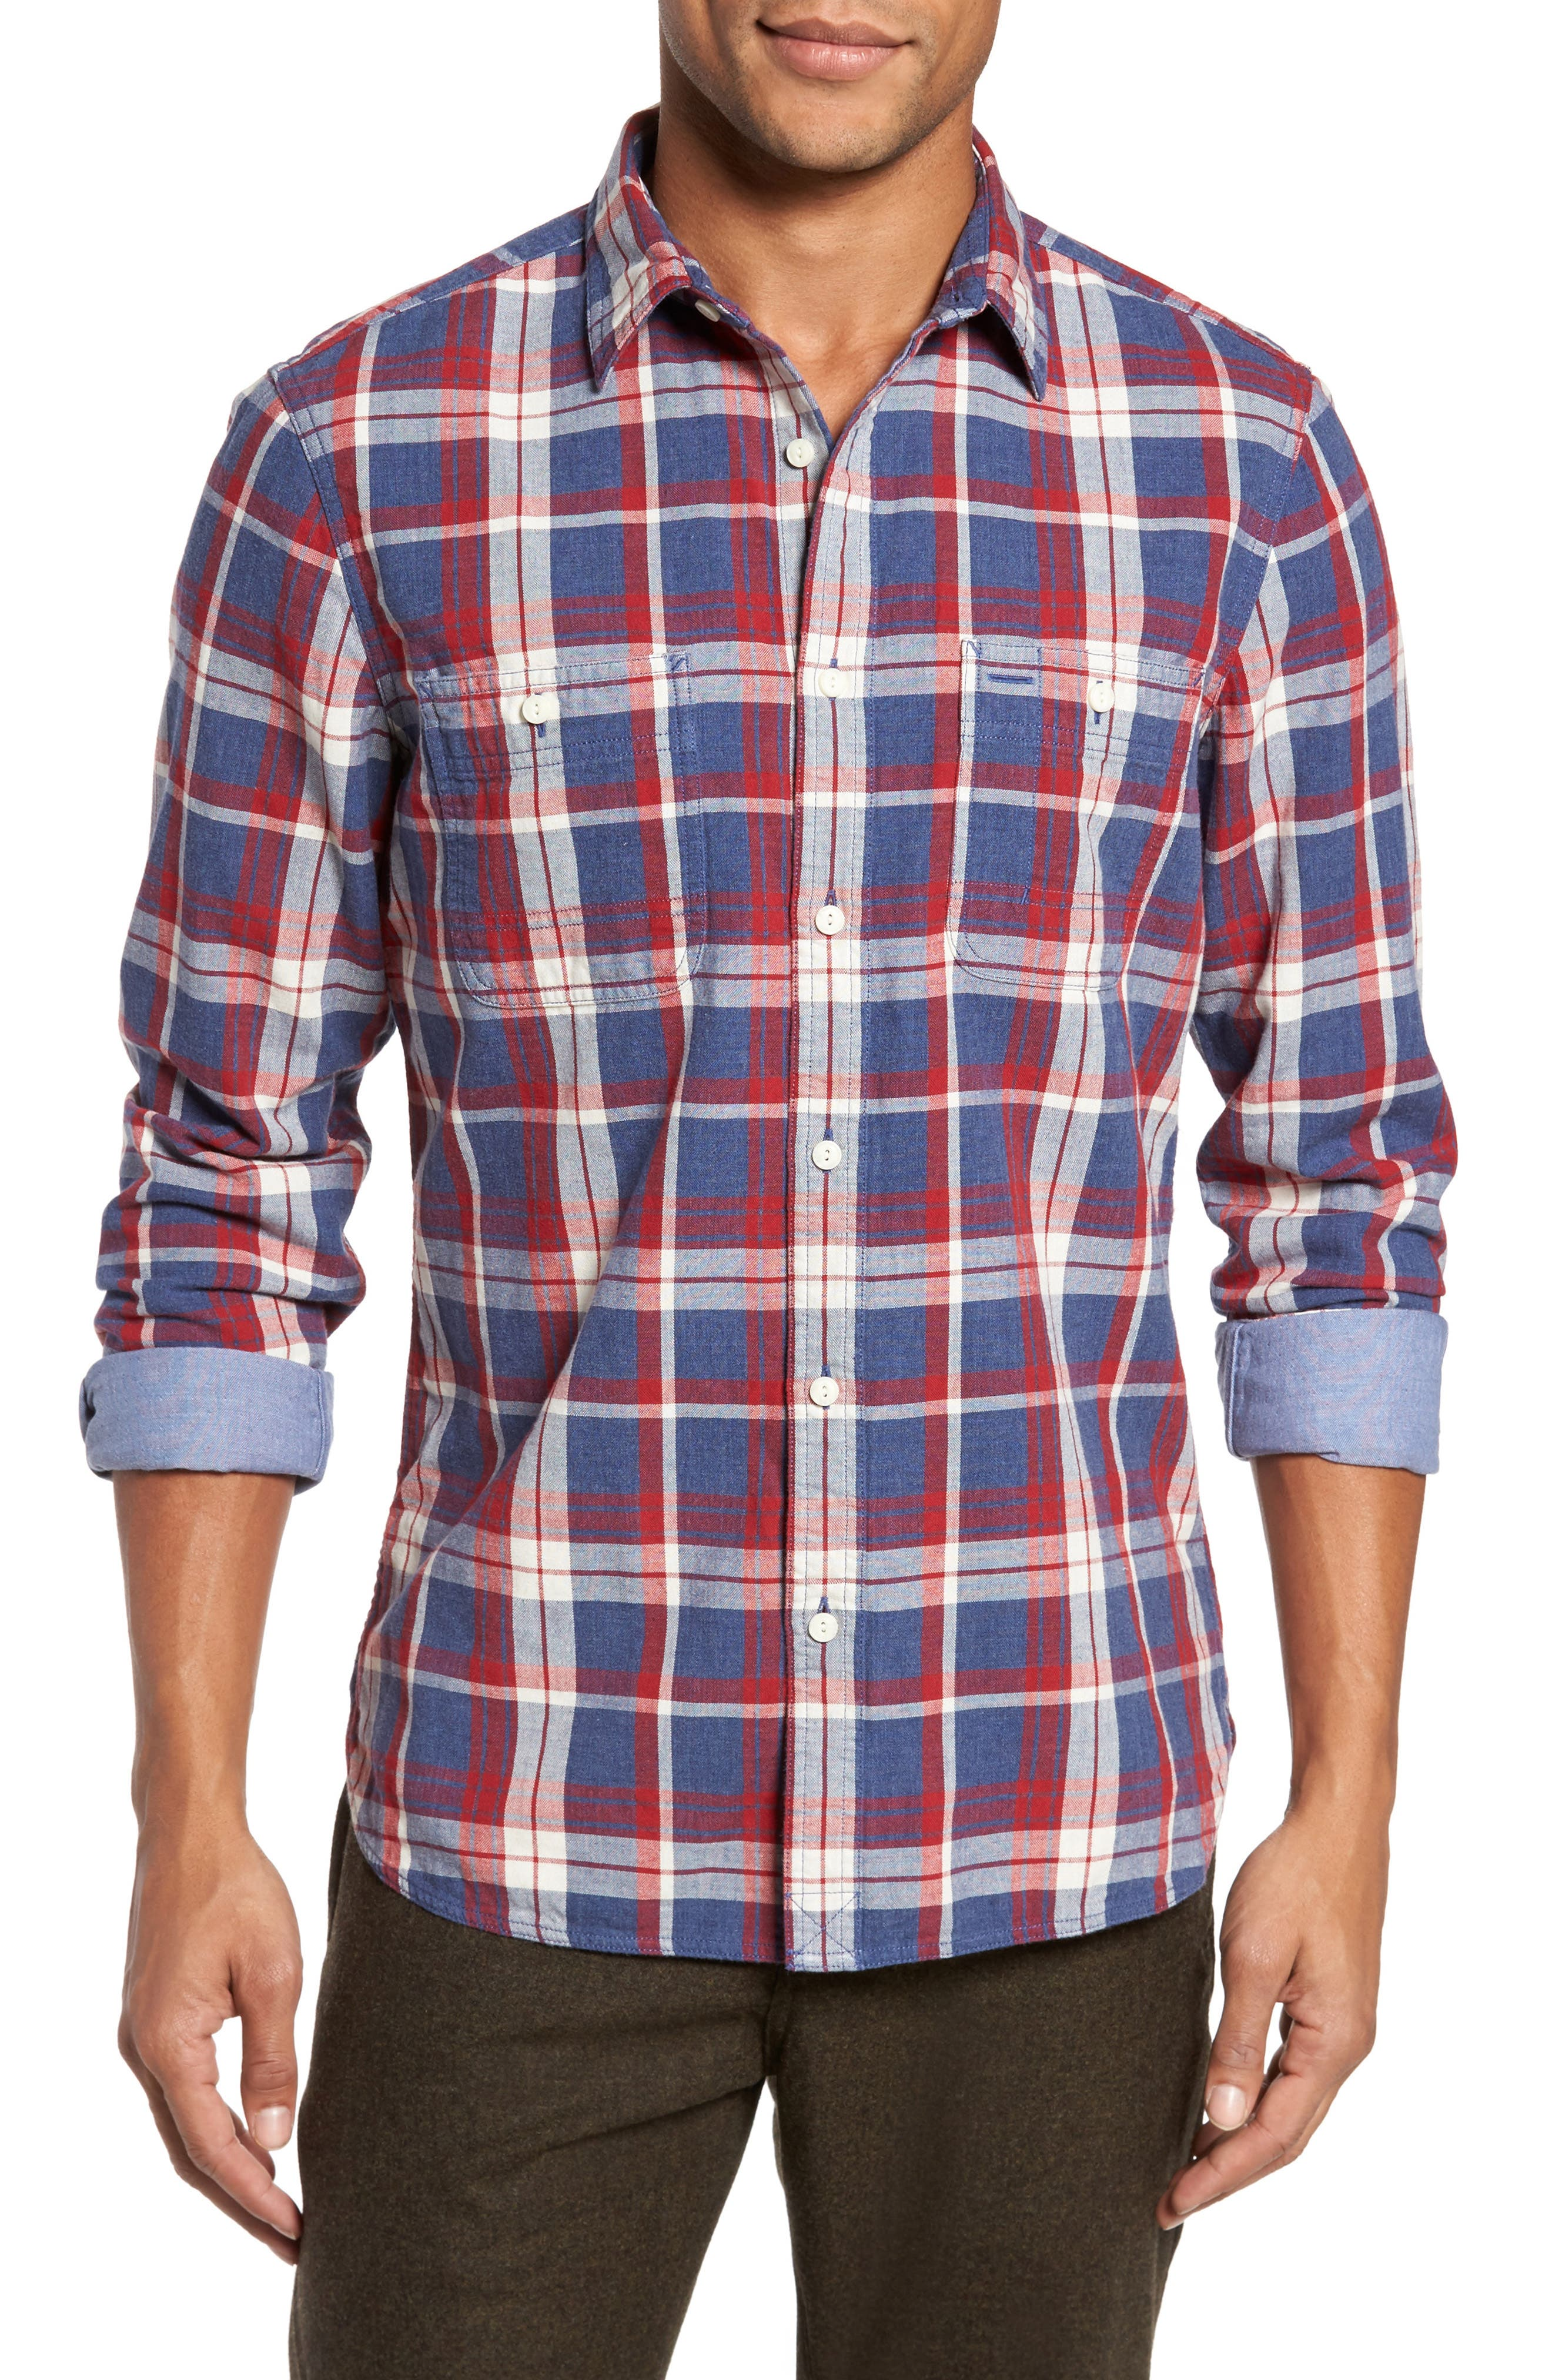 Trim Fit Workwear Duofold Plaid Sport Shirt,                         Main,                         color, Blue Ensign Red Plaid Duofold